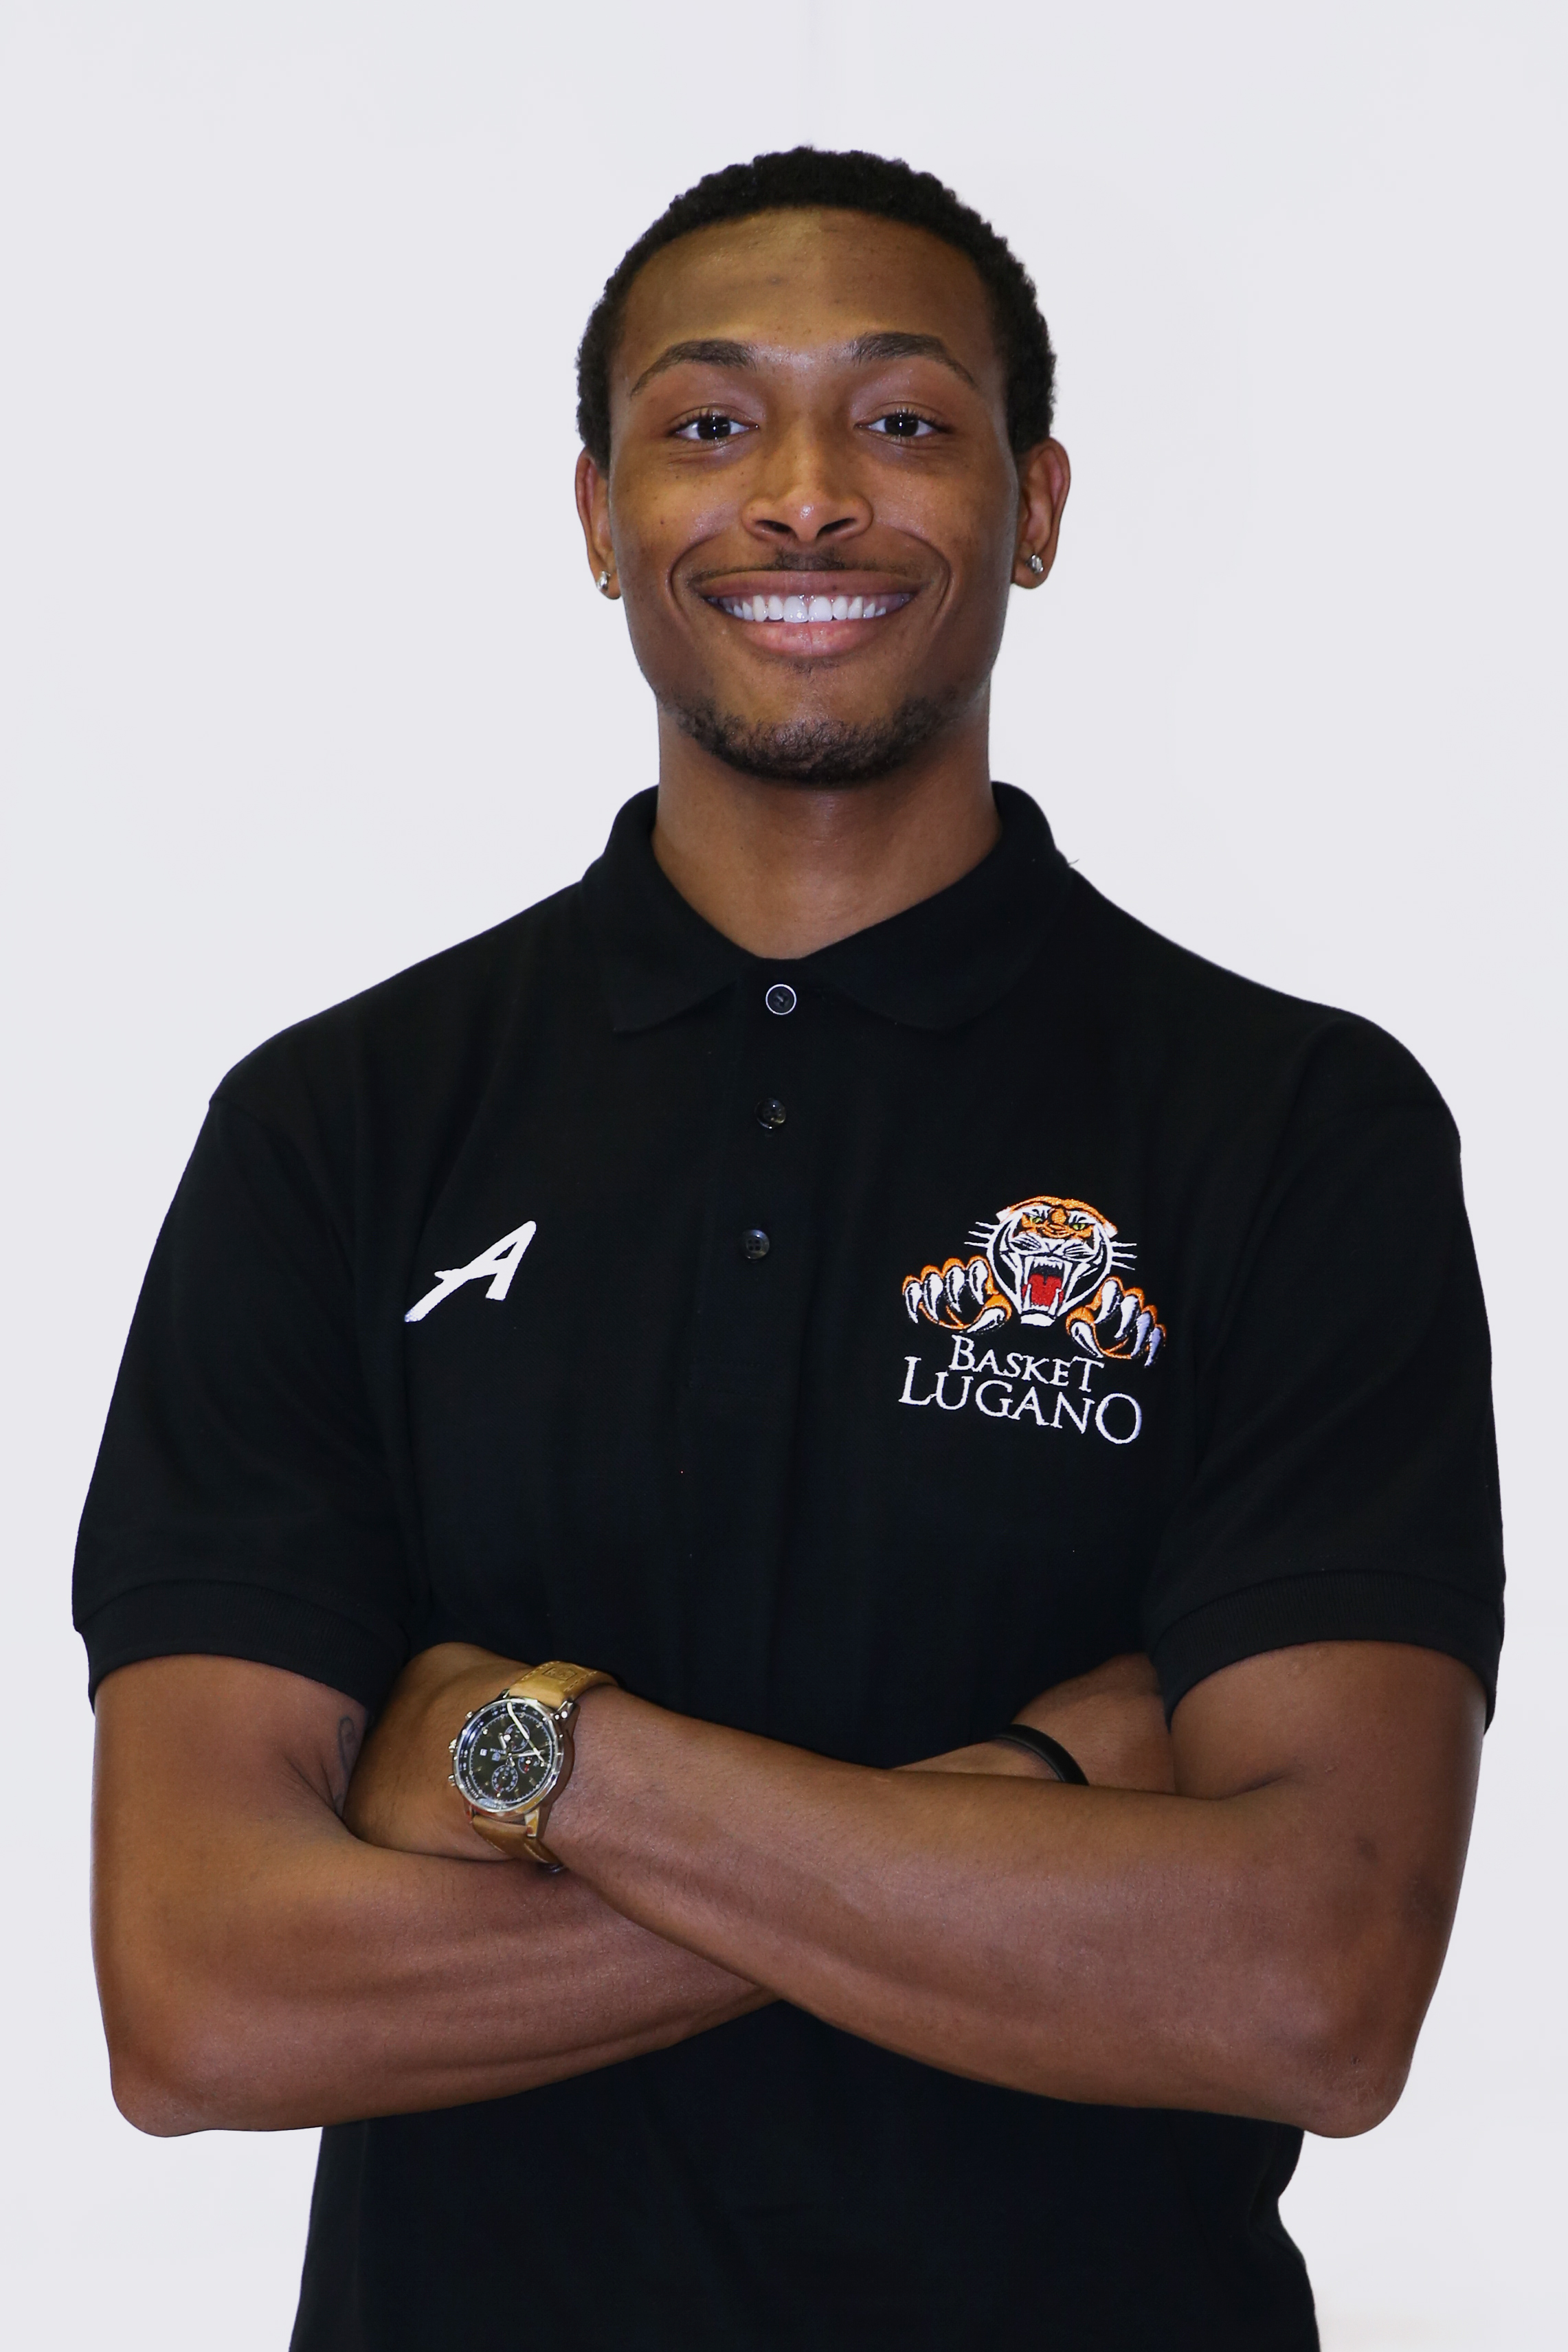 https://www.basketlugano.com/wp-content/uploads/2018/09/Steven-Green-30.03.1993-1.jpg